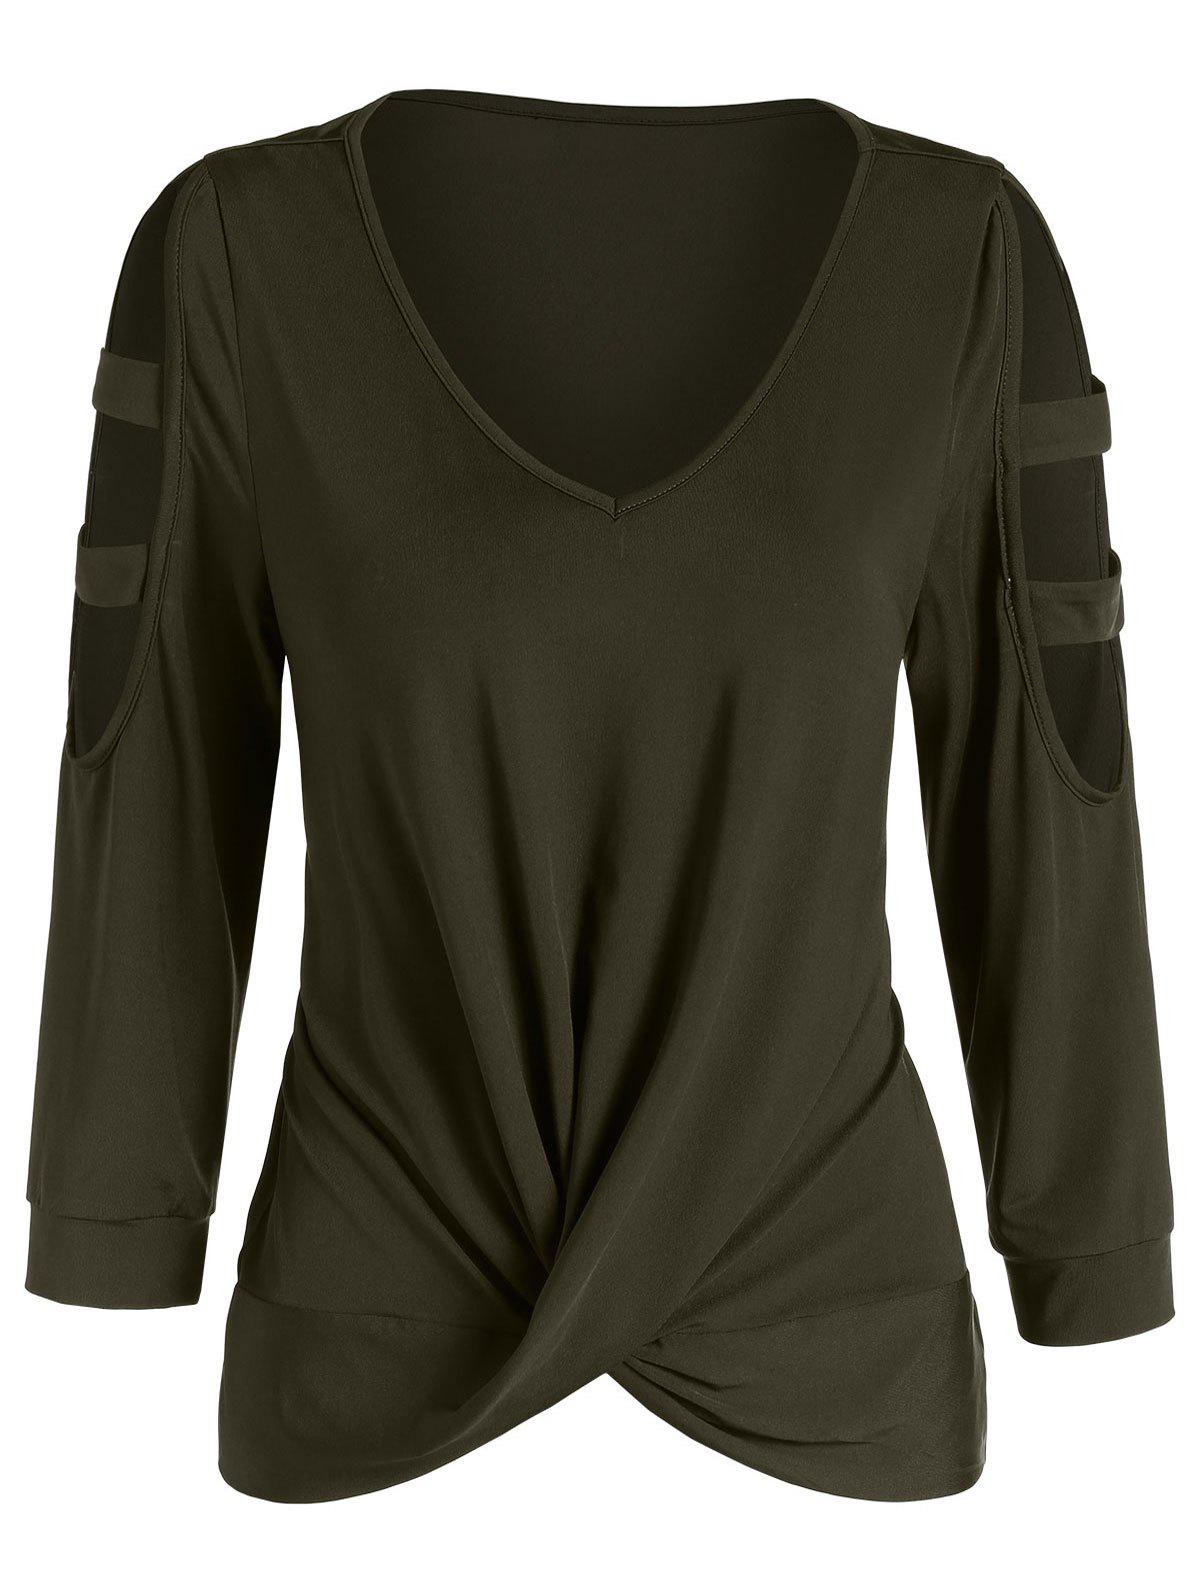 V Neck Cut Out Long Sleeve T Shirt - ARMY GREEN L